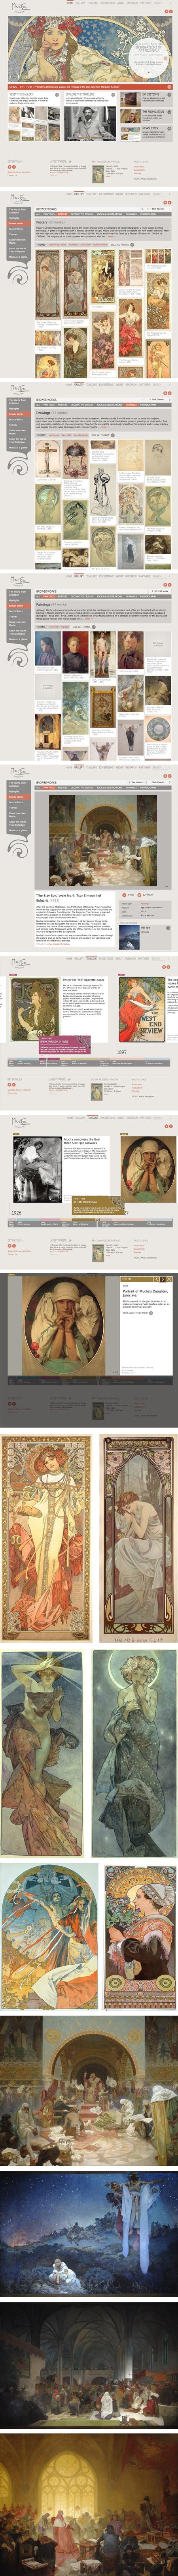 New Mucha Foundation website: Alphonse (Alfons) Mucha